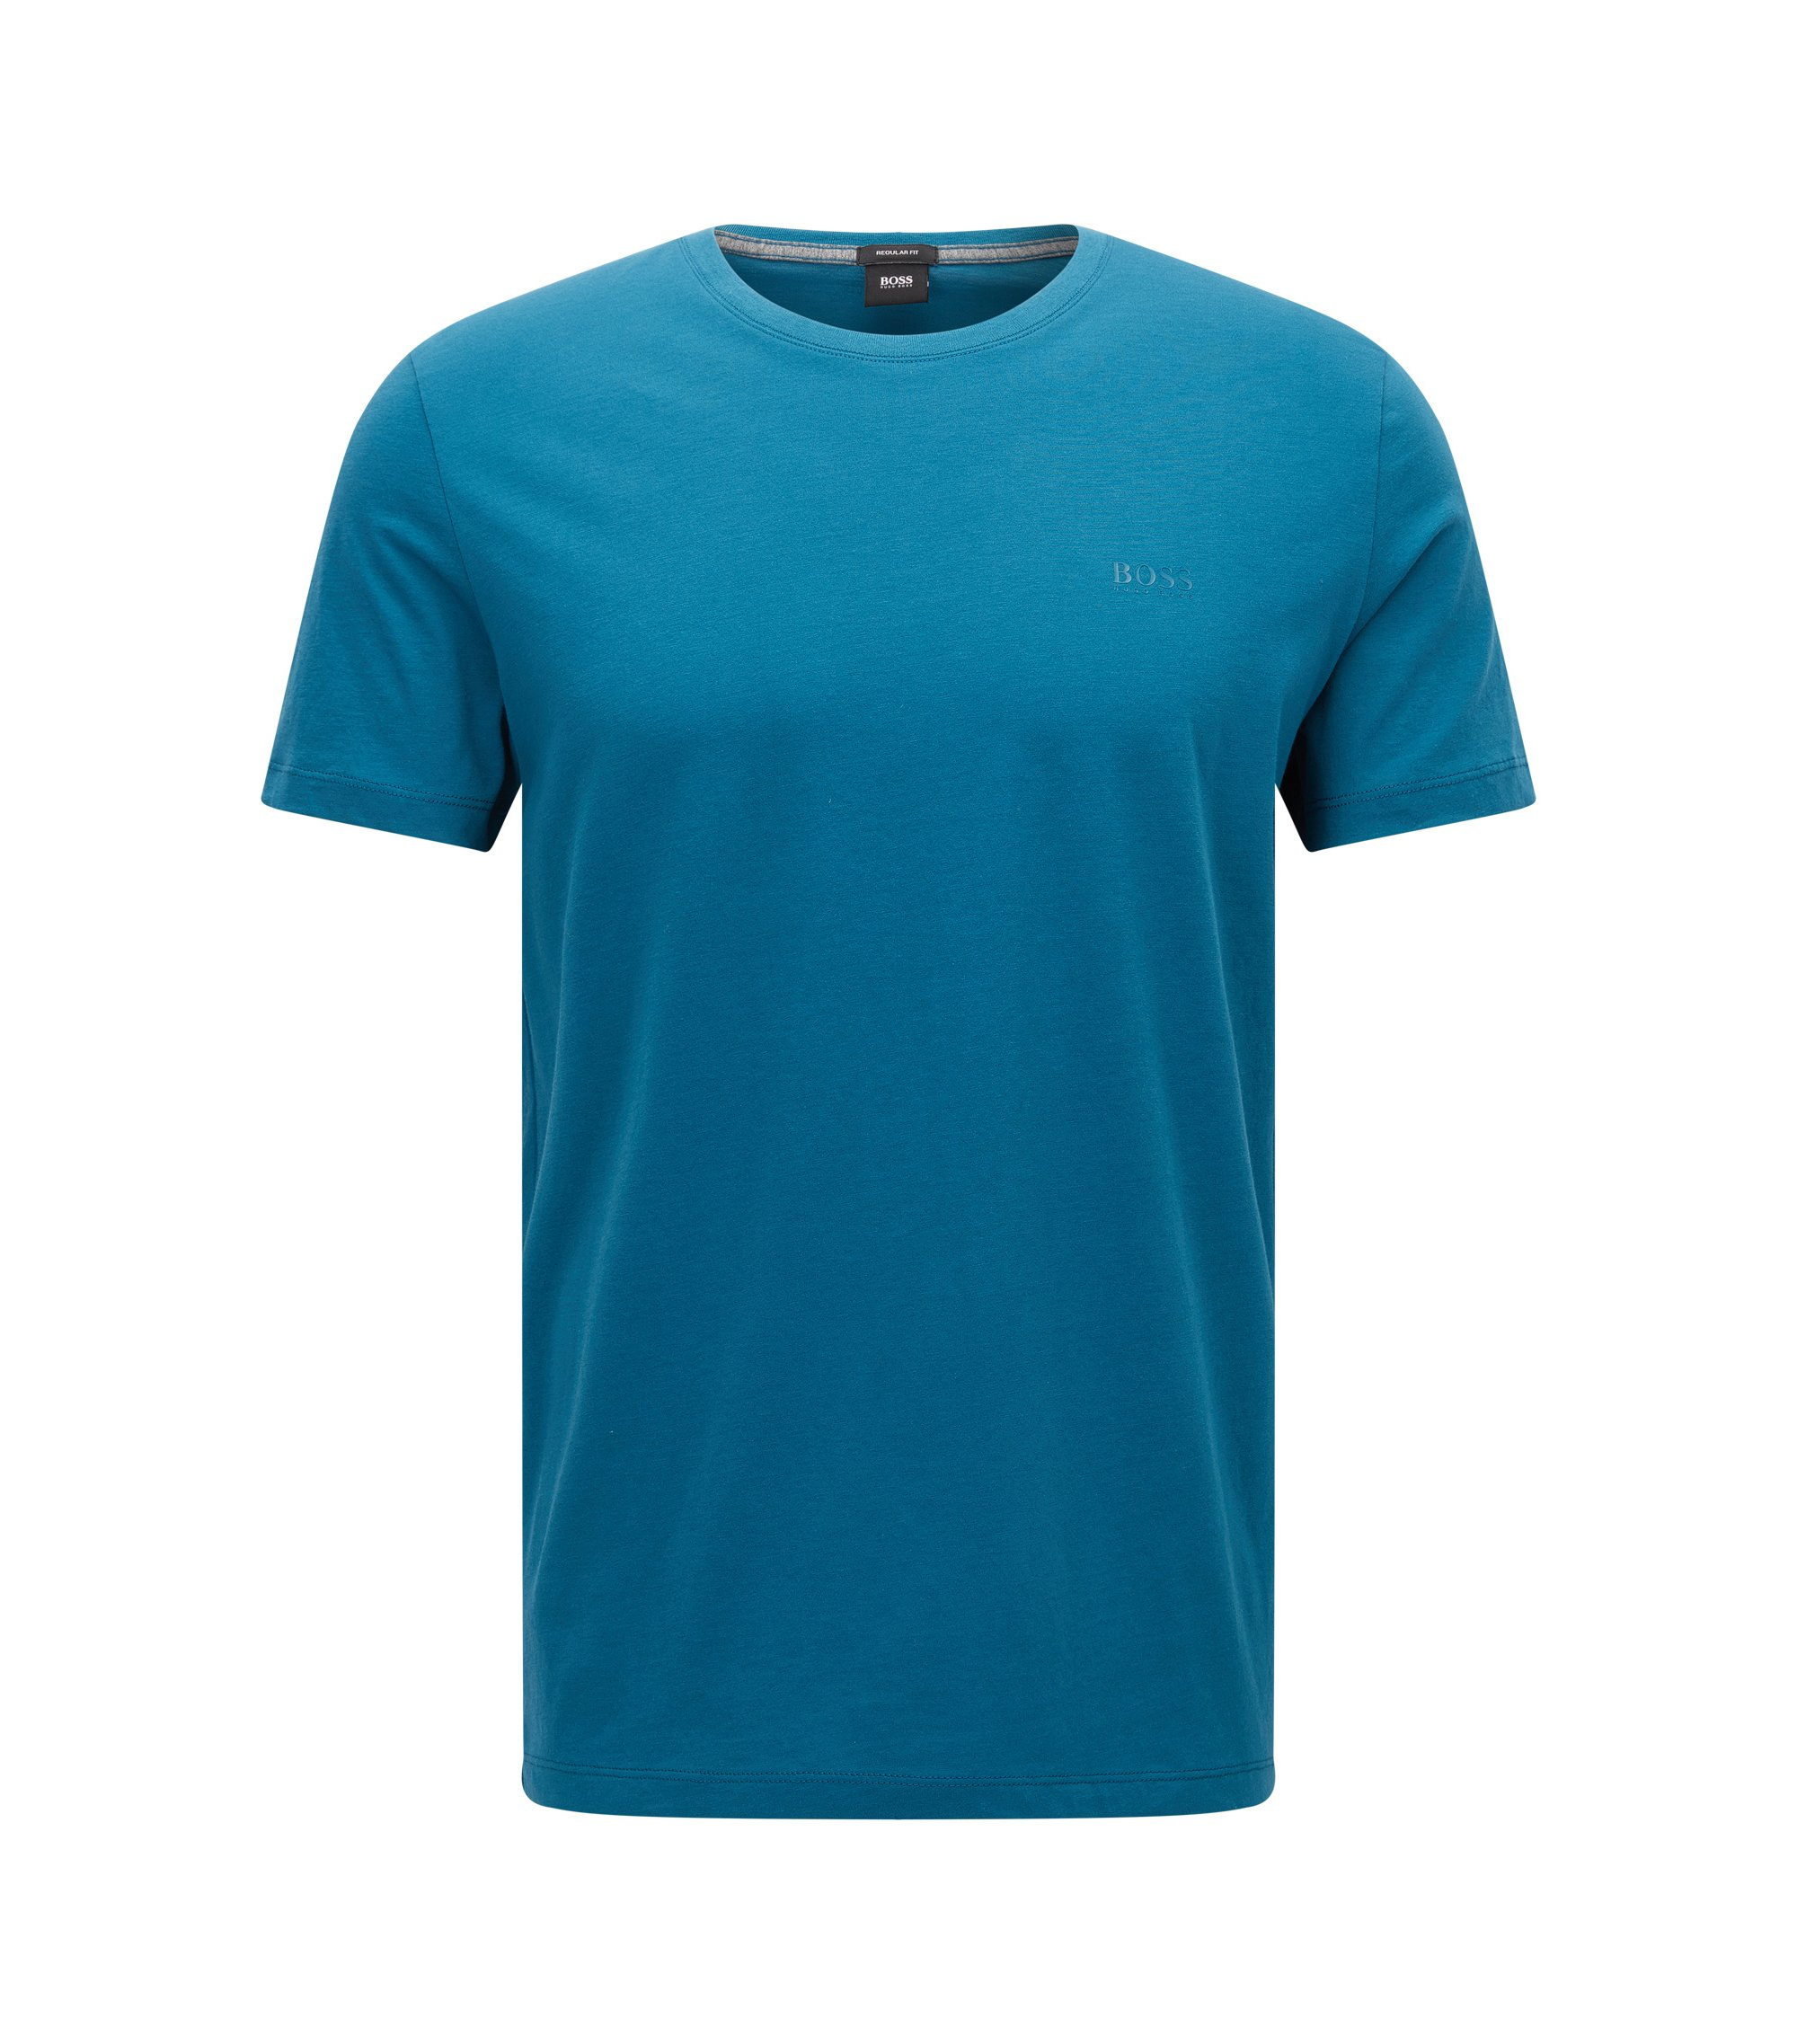 Regular-fit T-shirt in soft cotton, Turquoise